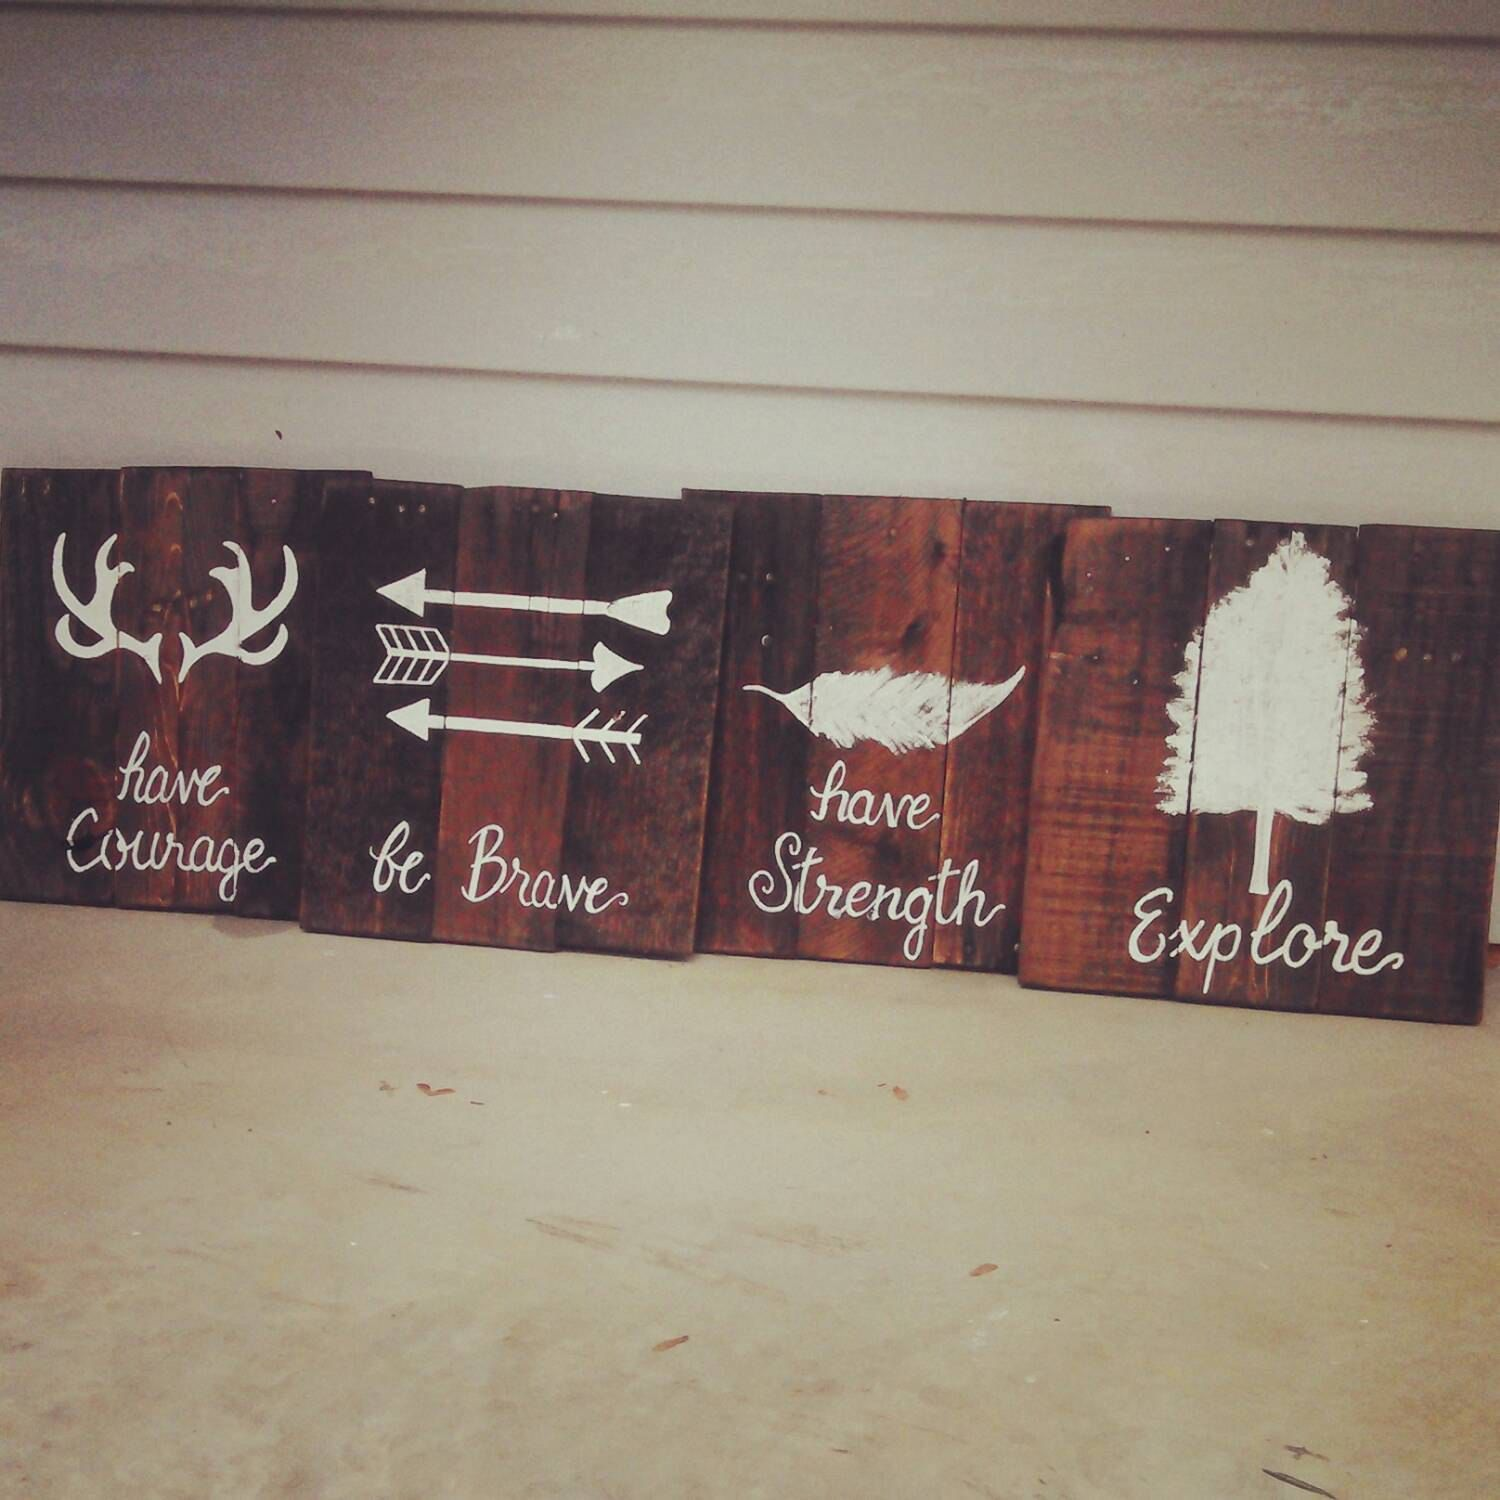 Hunting boys bedroom baby nursery cabin lake house sign by southerncutedesigns on Etsy https://www.etsy.com/listing/232274642/hunting-boys-bedroom-baby-nursery-cabin